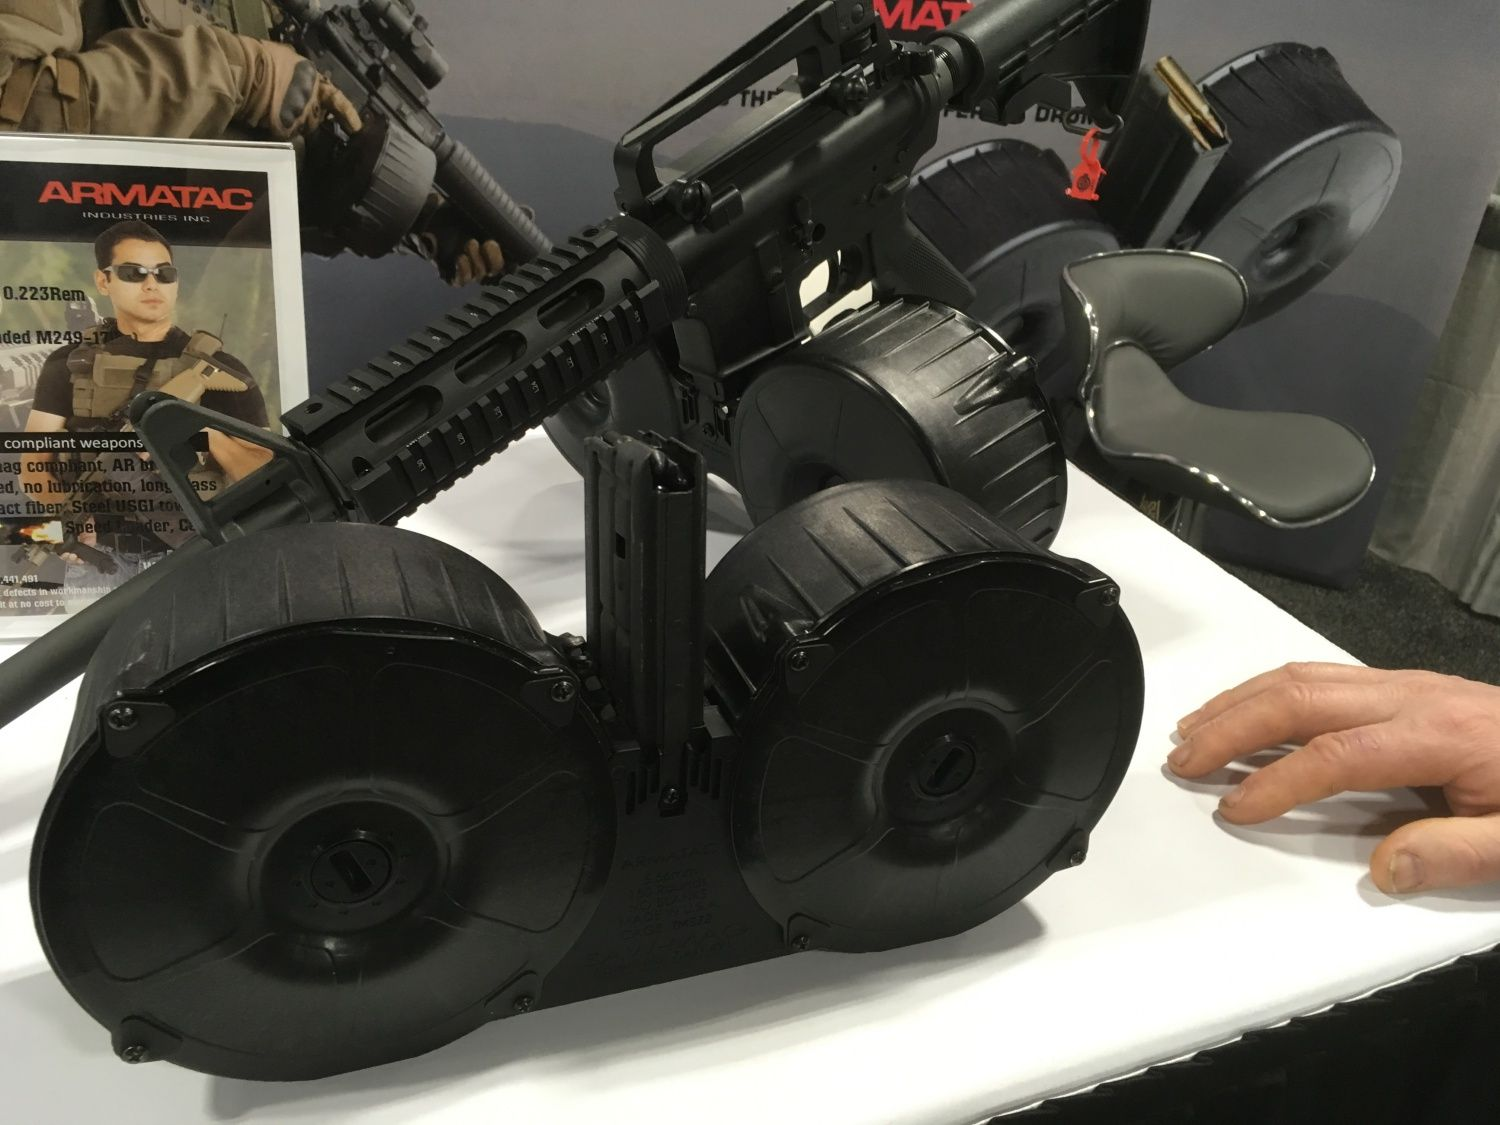 Armatac Makes A Dual Drum Magazine At First Glance One Might Think Of A Beta C Mag However That Is As Far As The Similarities L Ammo Cans Drums 300 Blackout